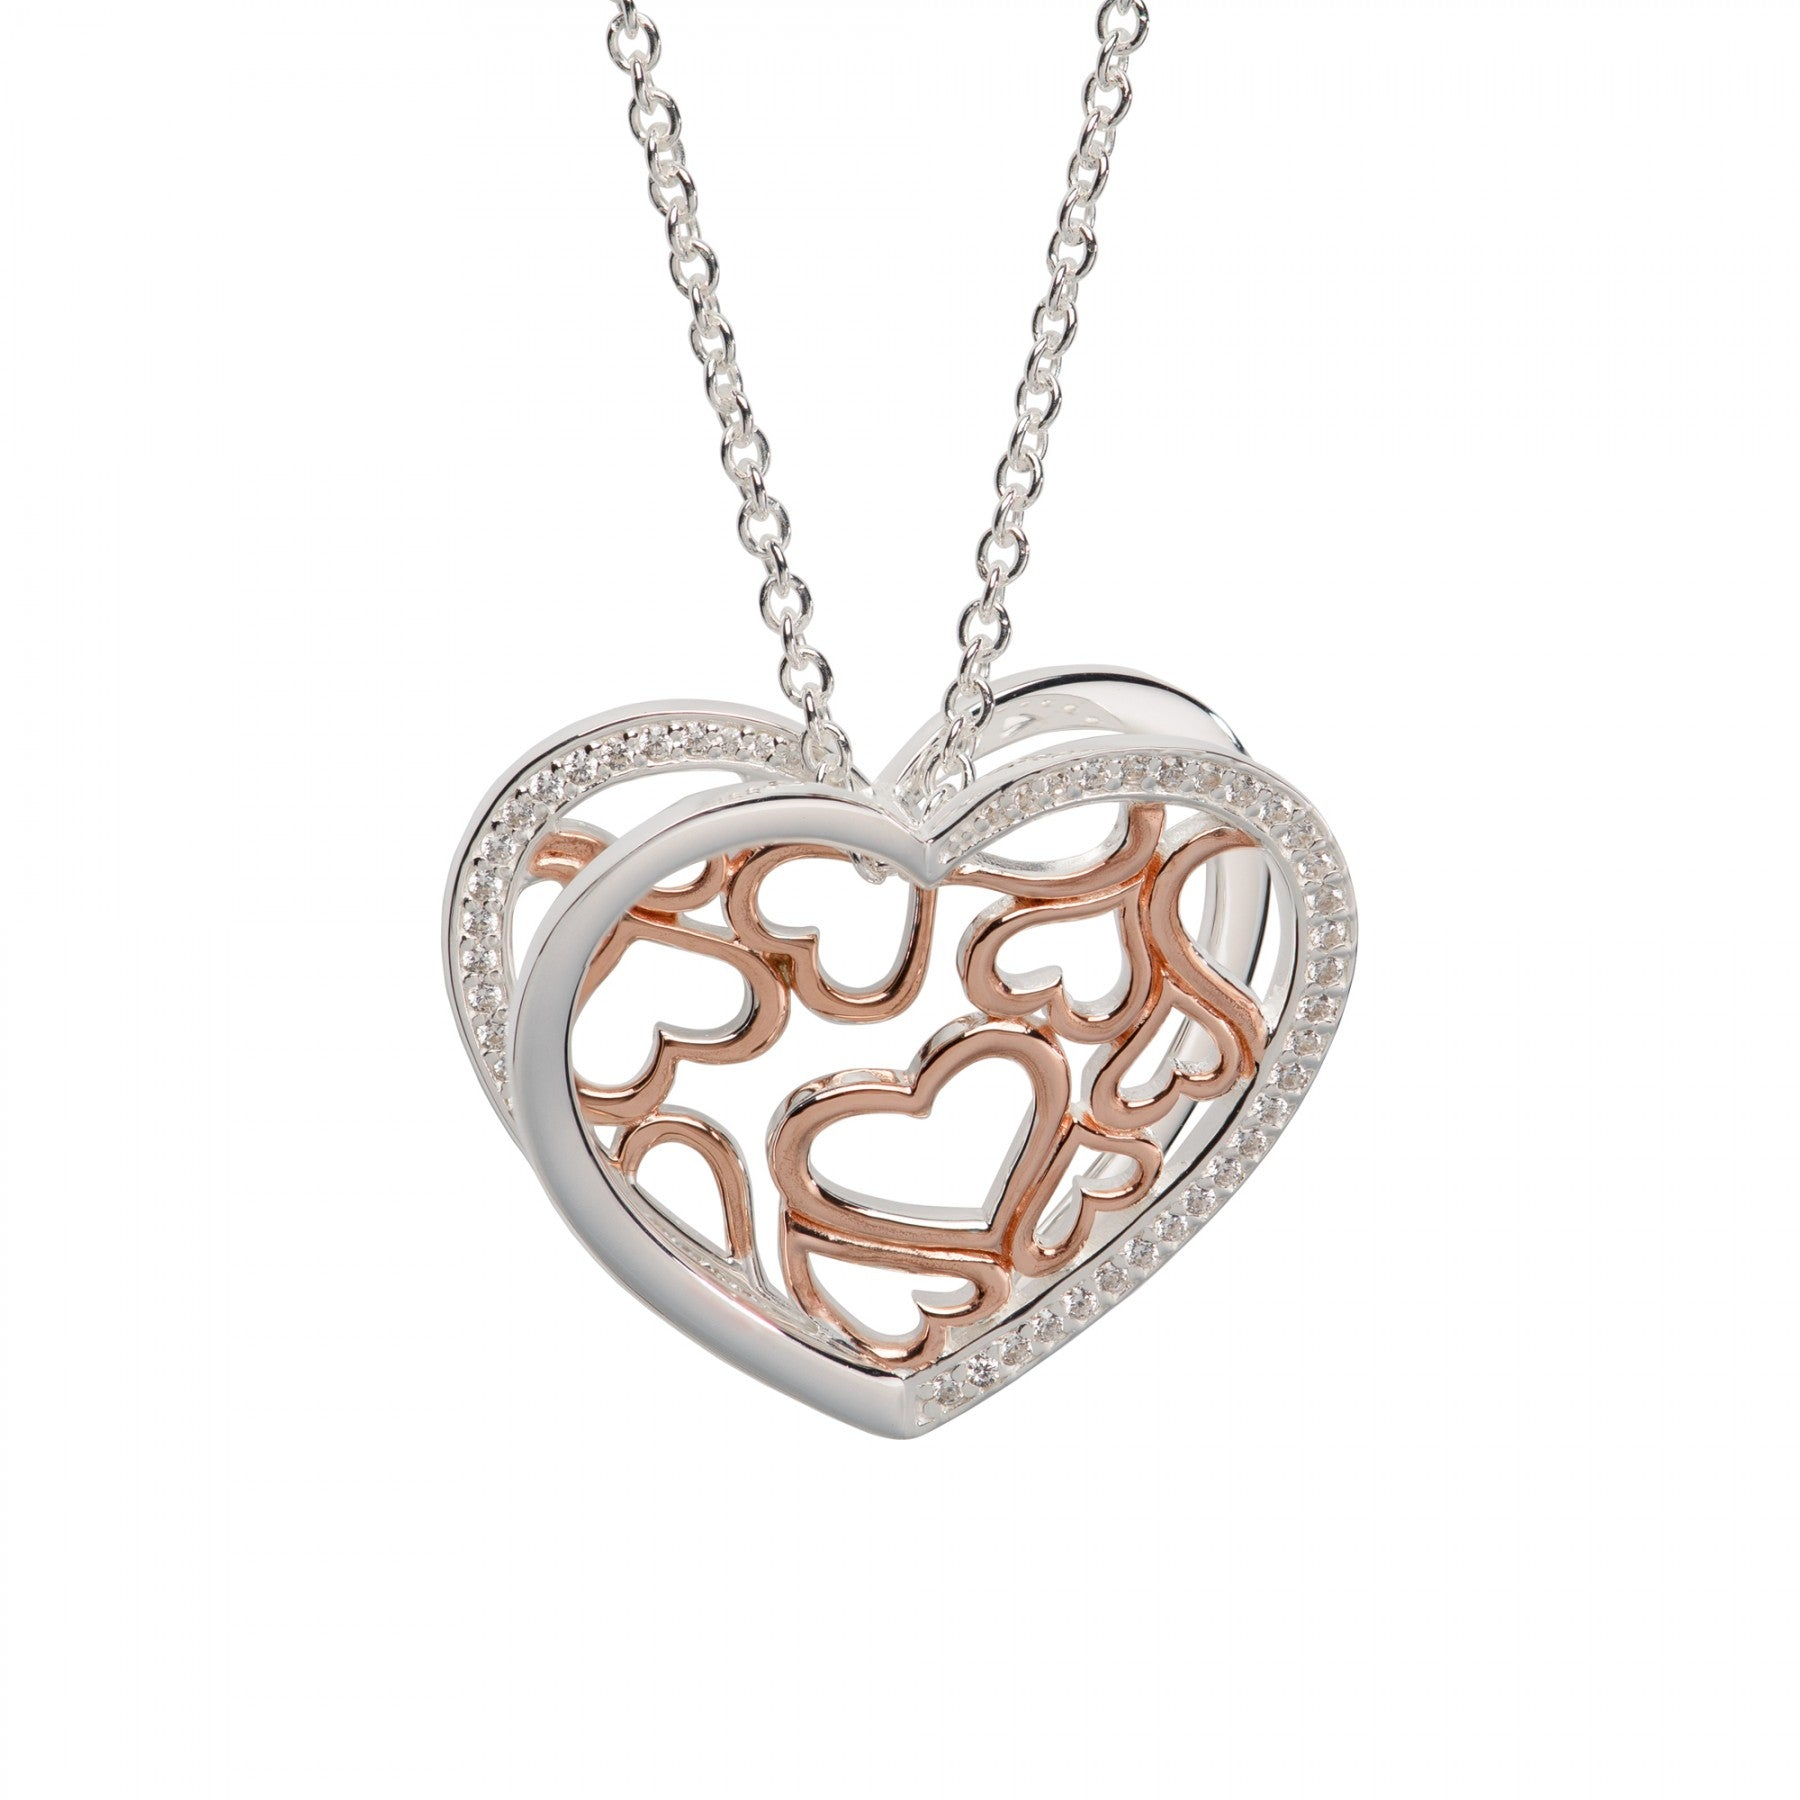 Unique and Co Silver and Rose Gold Heart Pendant with Diamante